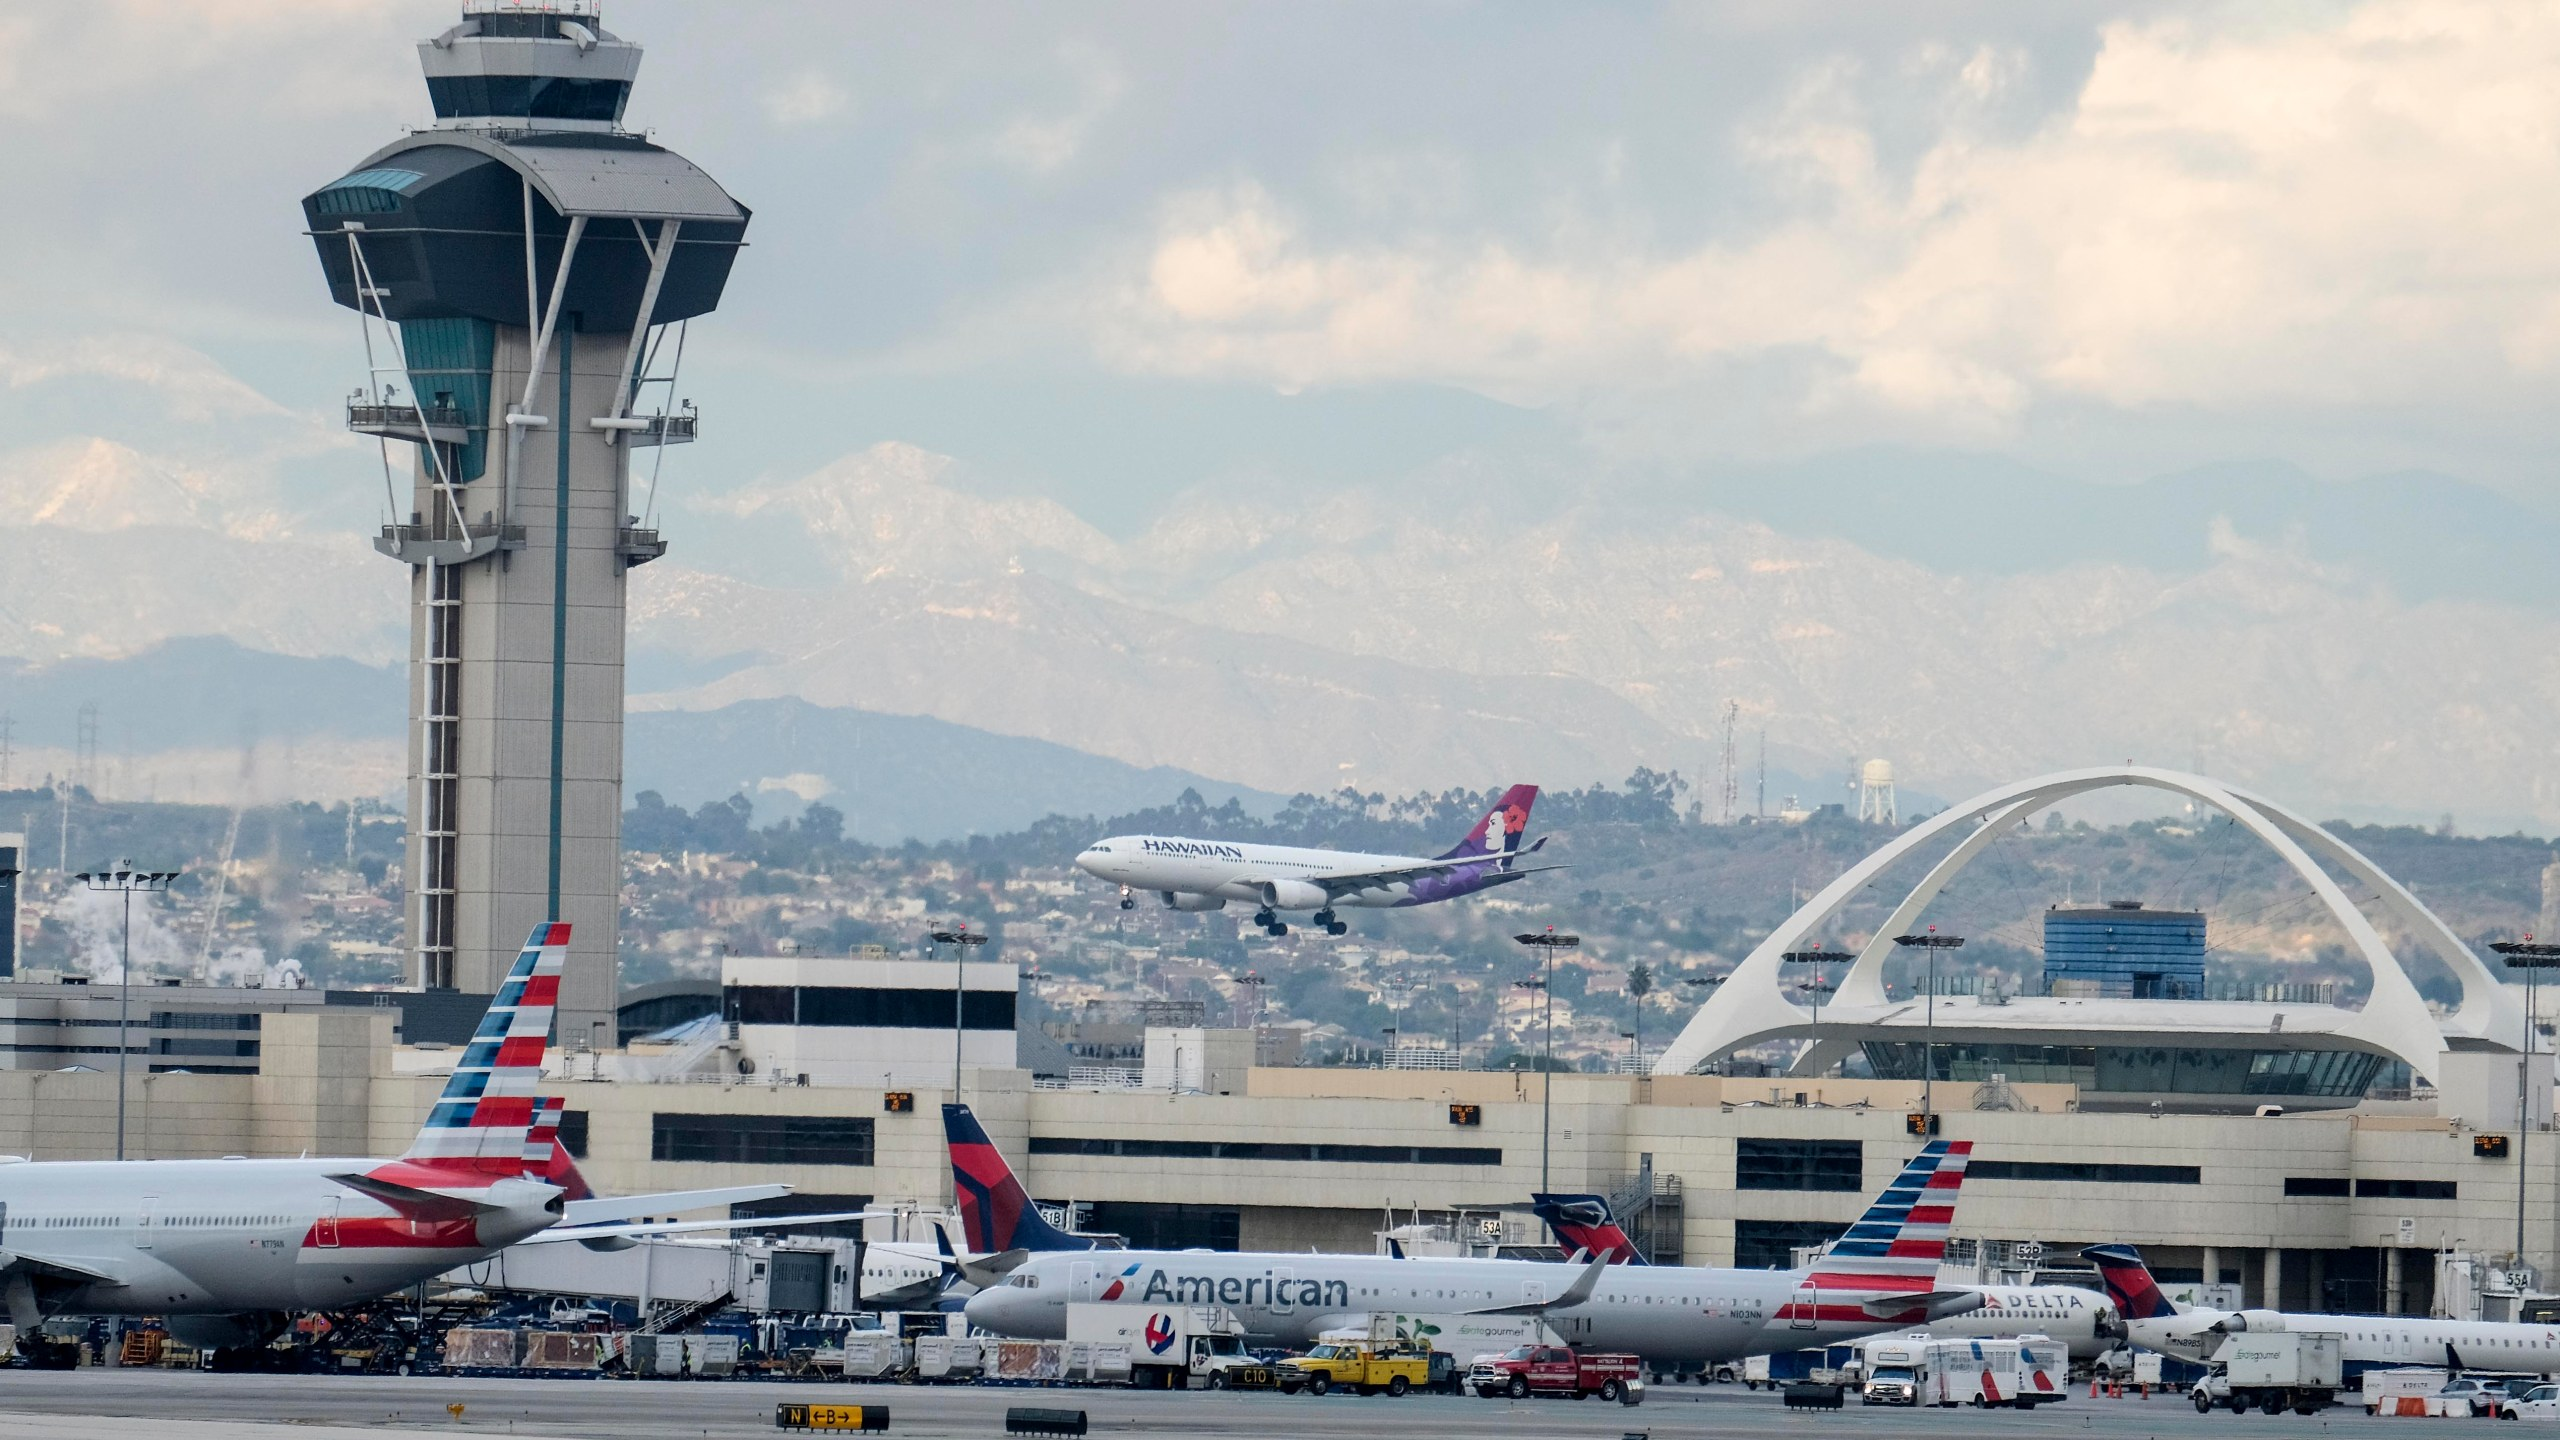 A Hawaiian Airlines aircraft prepares to land at the Los Angeles International Airport on Dec. 22, 2016. (Credit: Ringo Chiu / AFP / Getty Images)